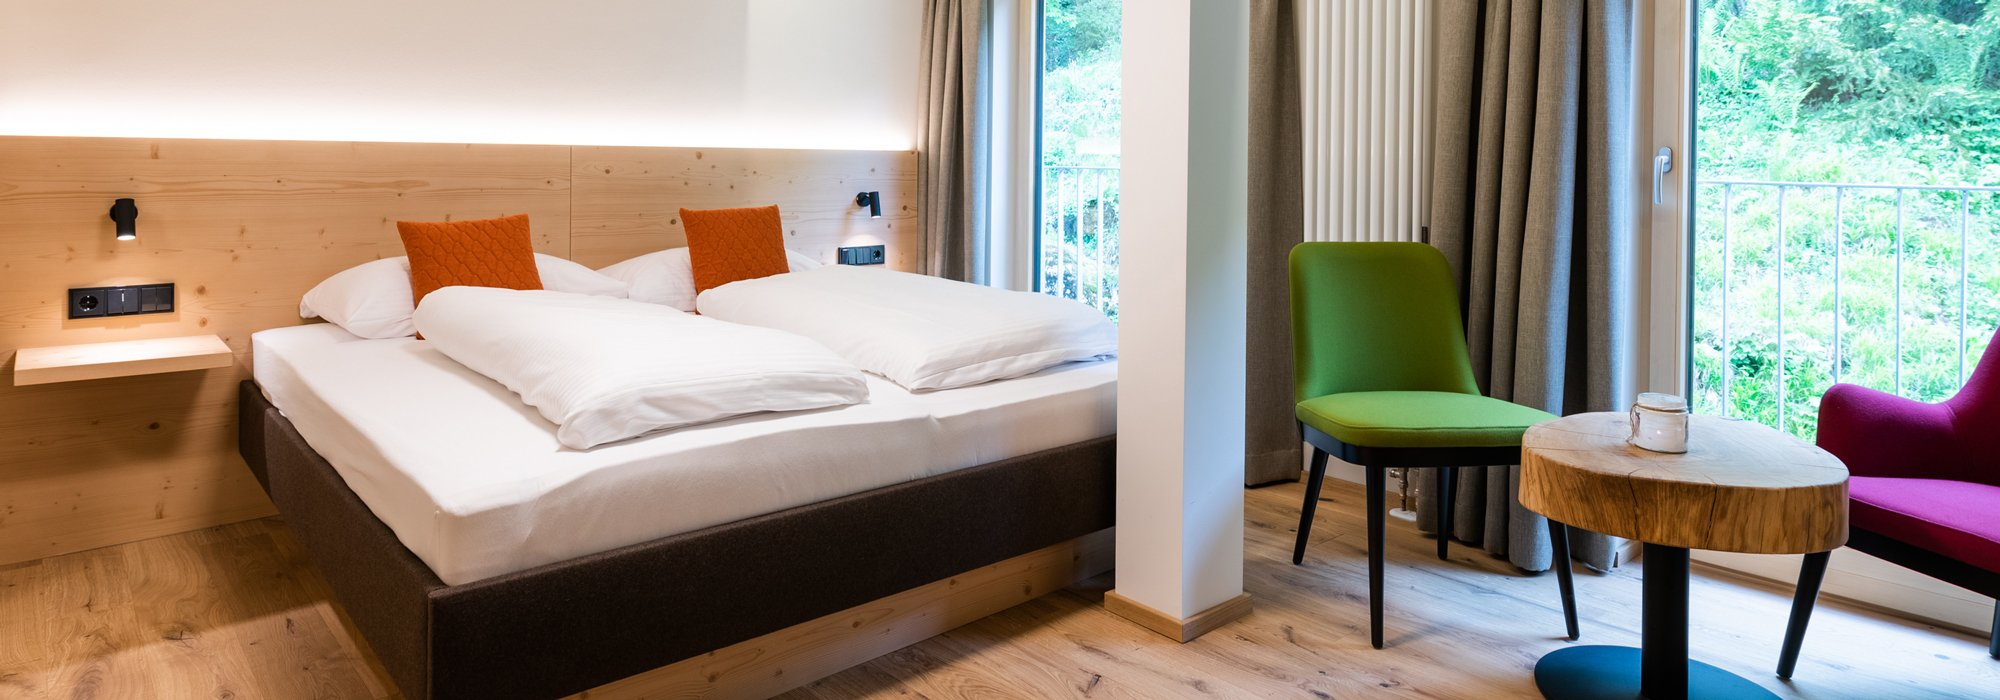 The hotel room for hikers & nature lovers